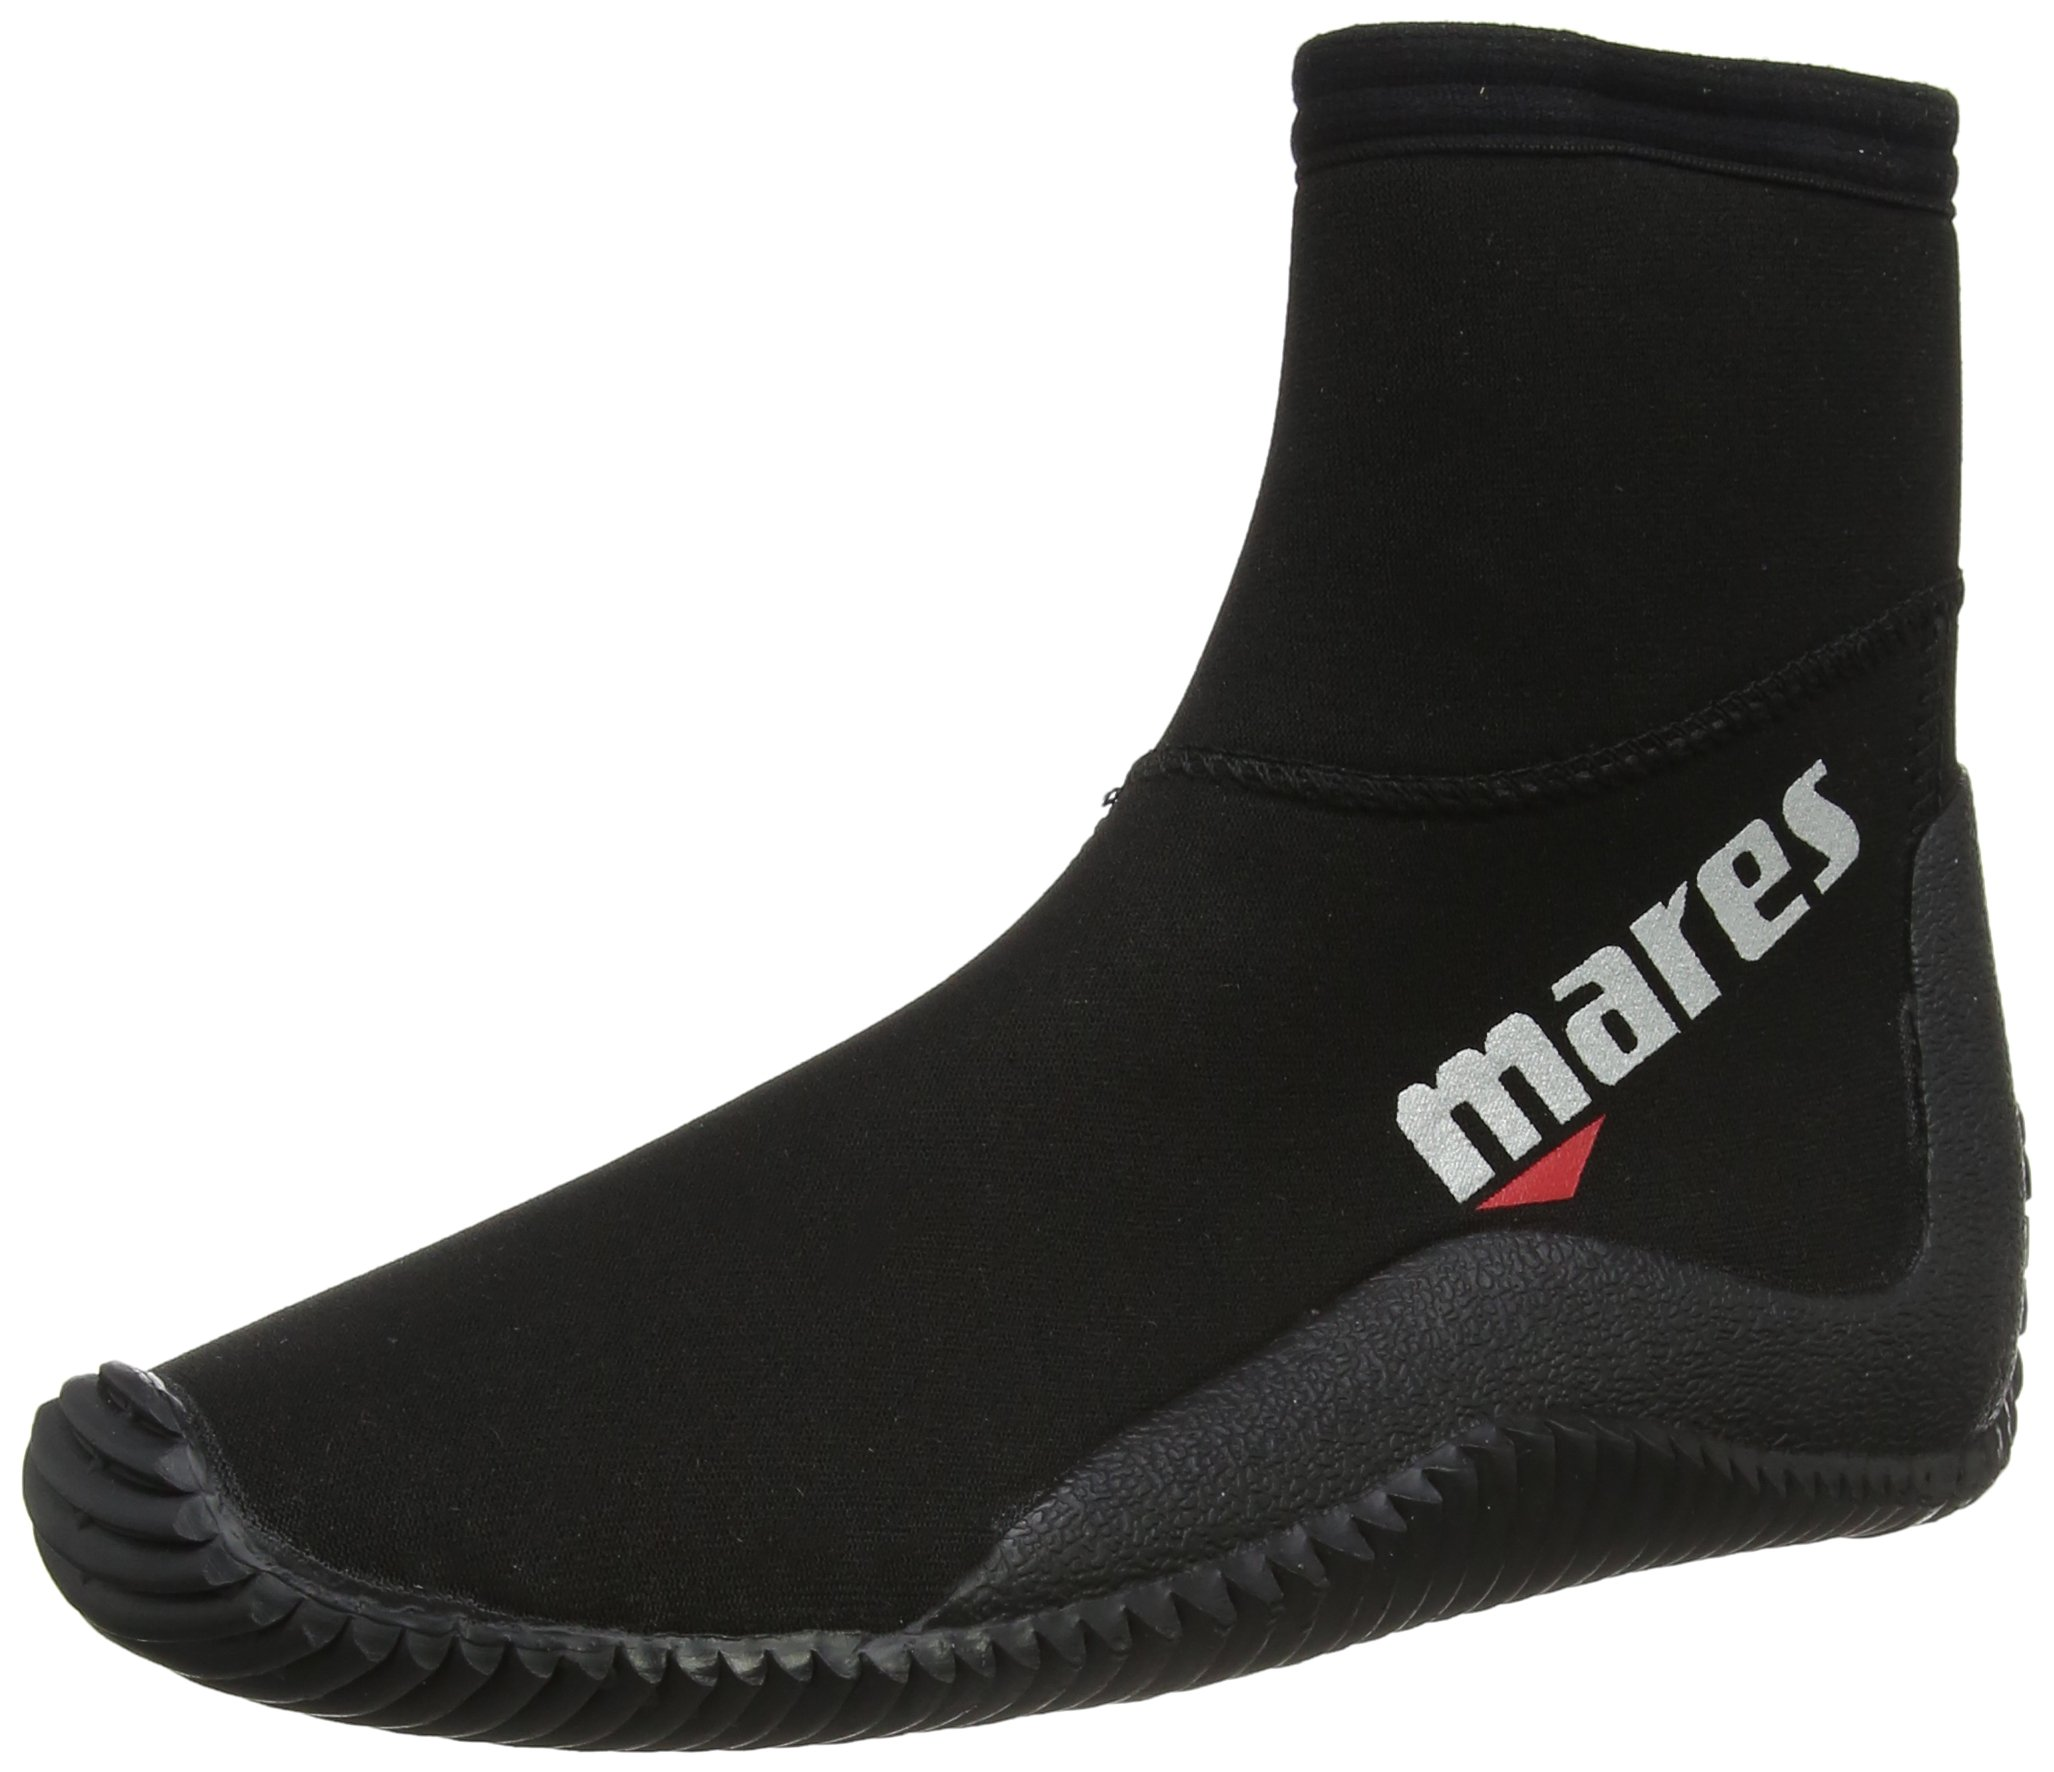 Enthusiastic Mares Equator 2mm Dive Boots Boots, Booties